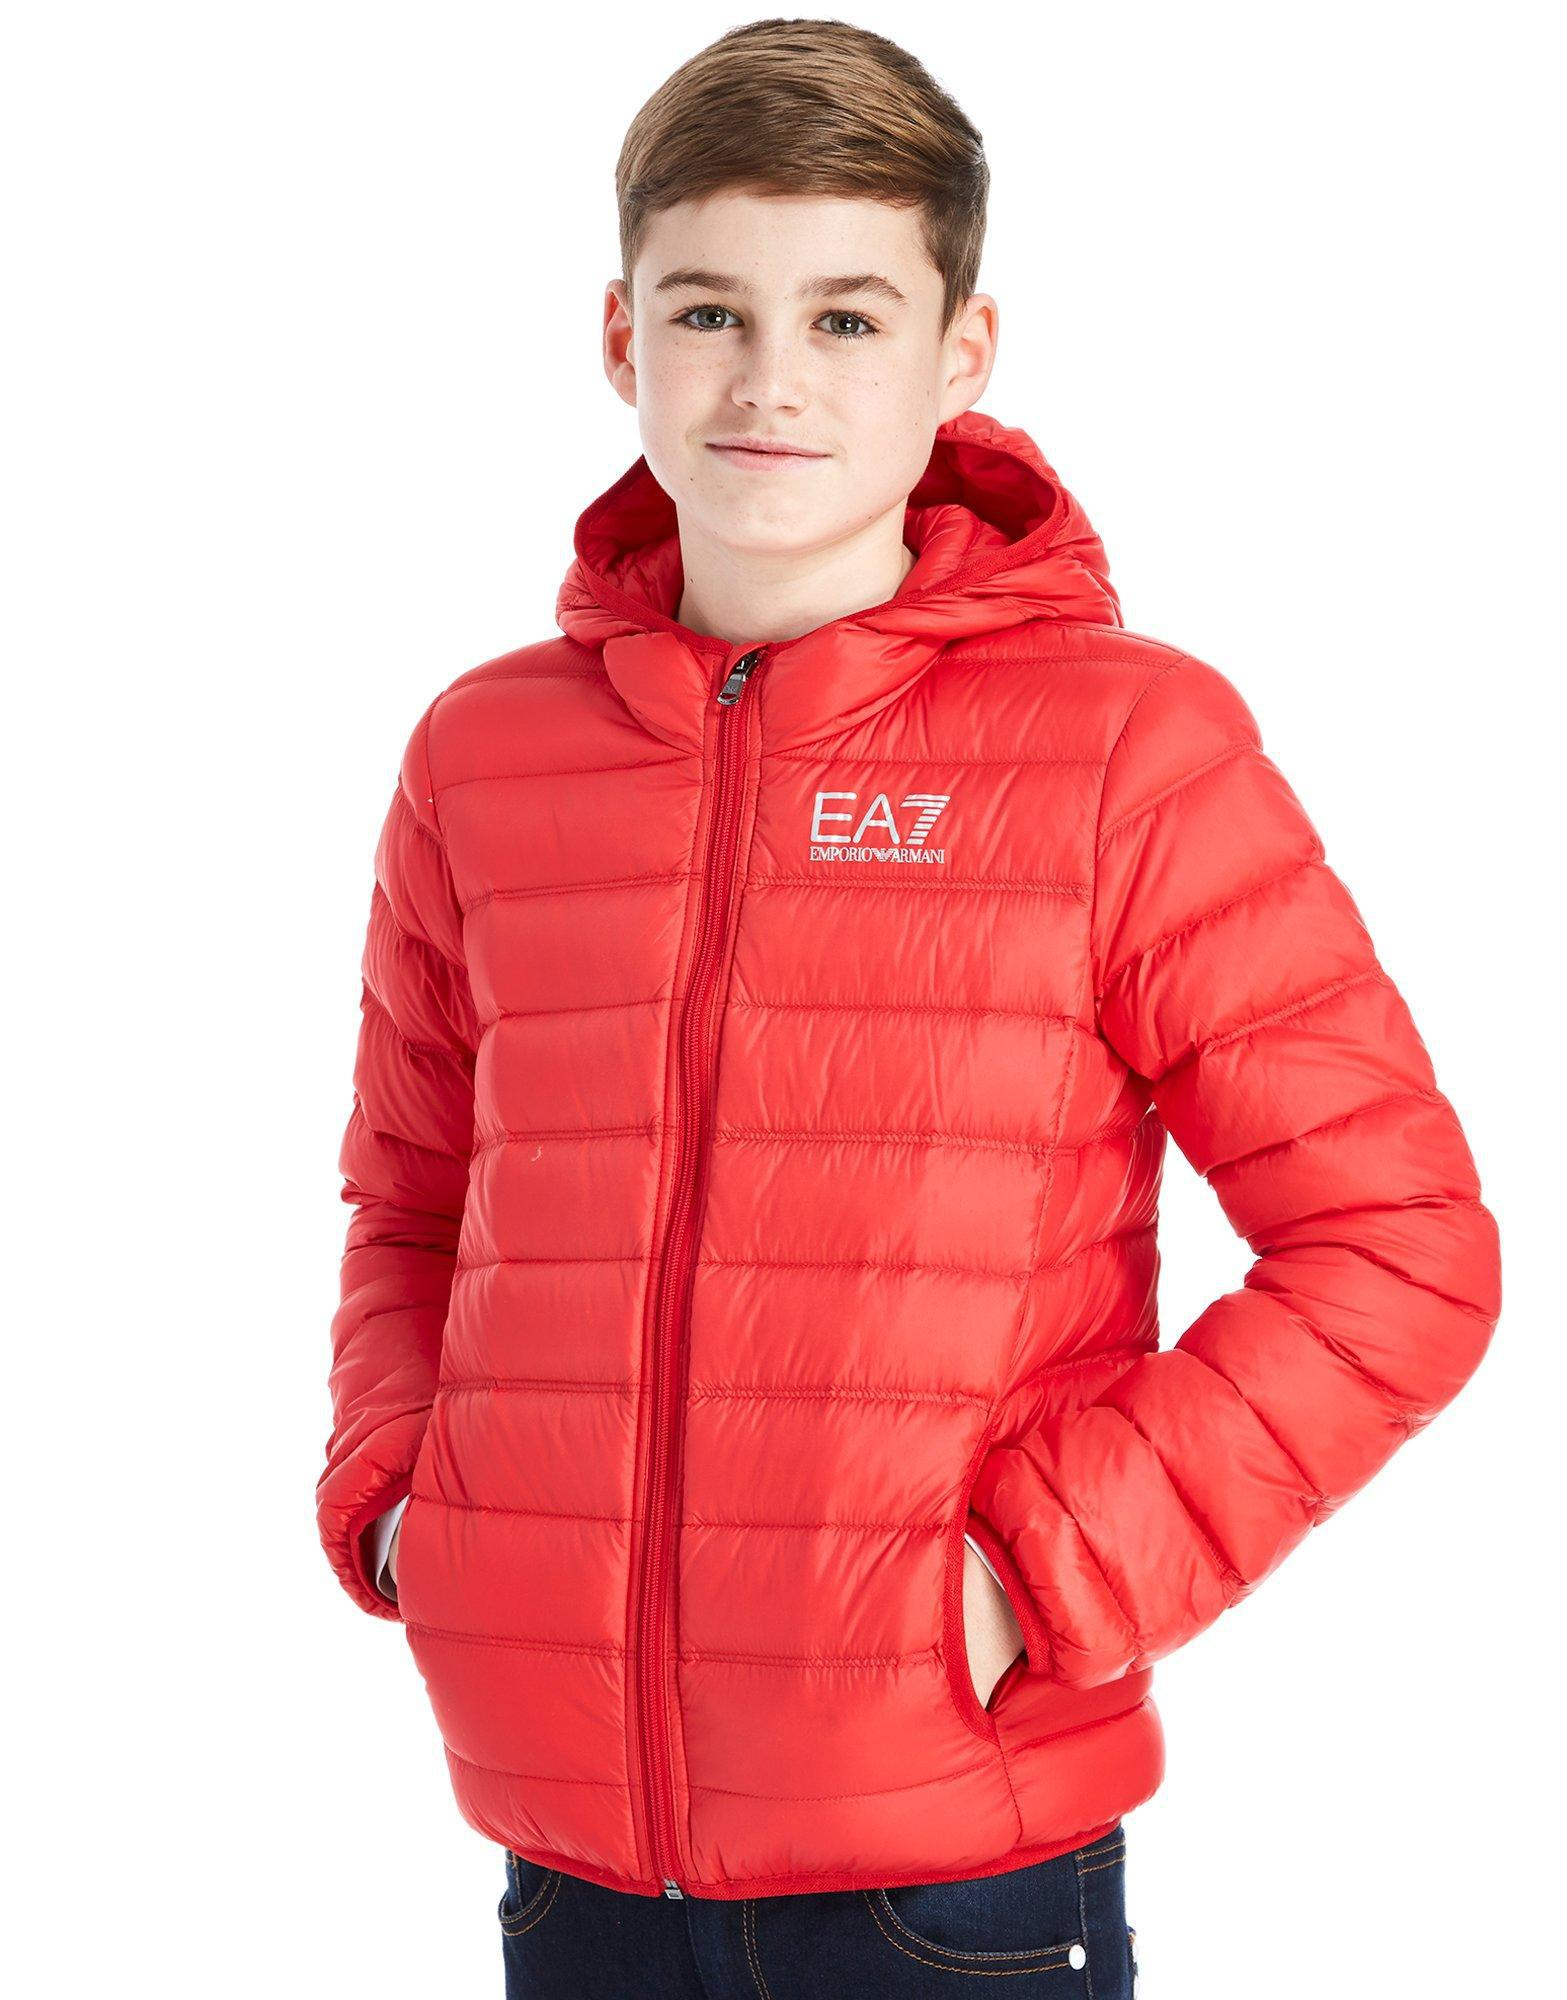 6a9597140 EA7 Core Down Jacket Junior in Red for Men - Lyst